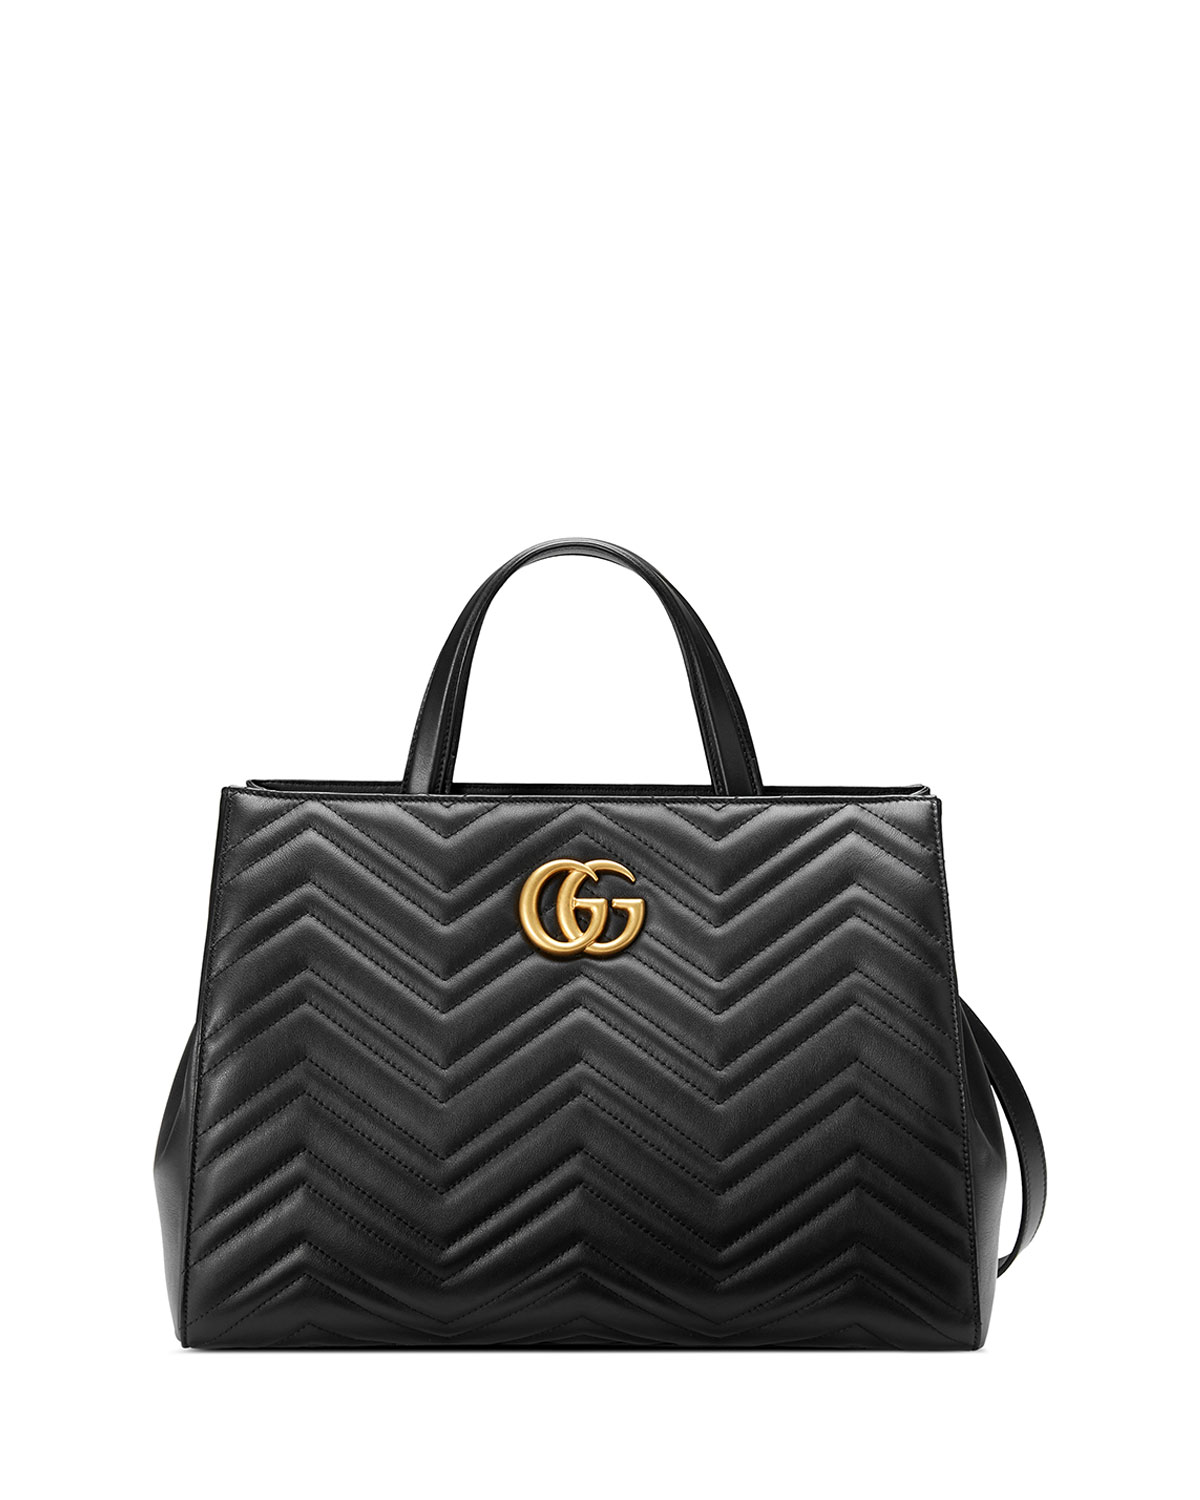 5a301e68143 Gucci GG Marmont Medium Matelassé Top-Handle Bag